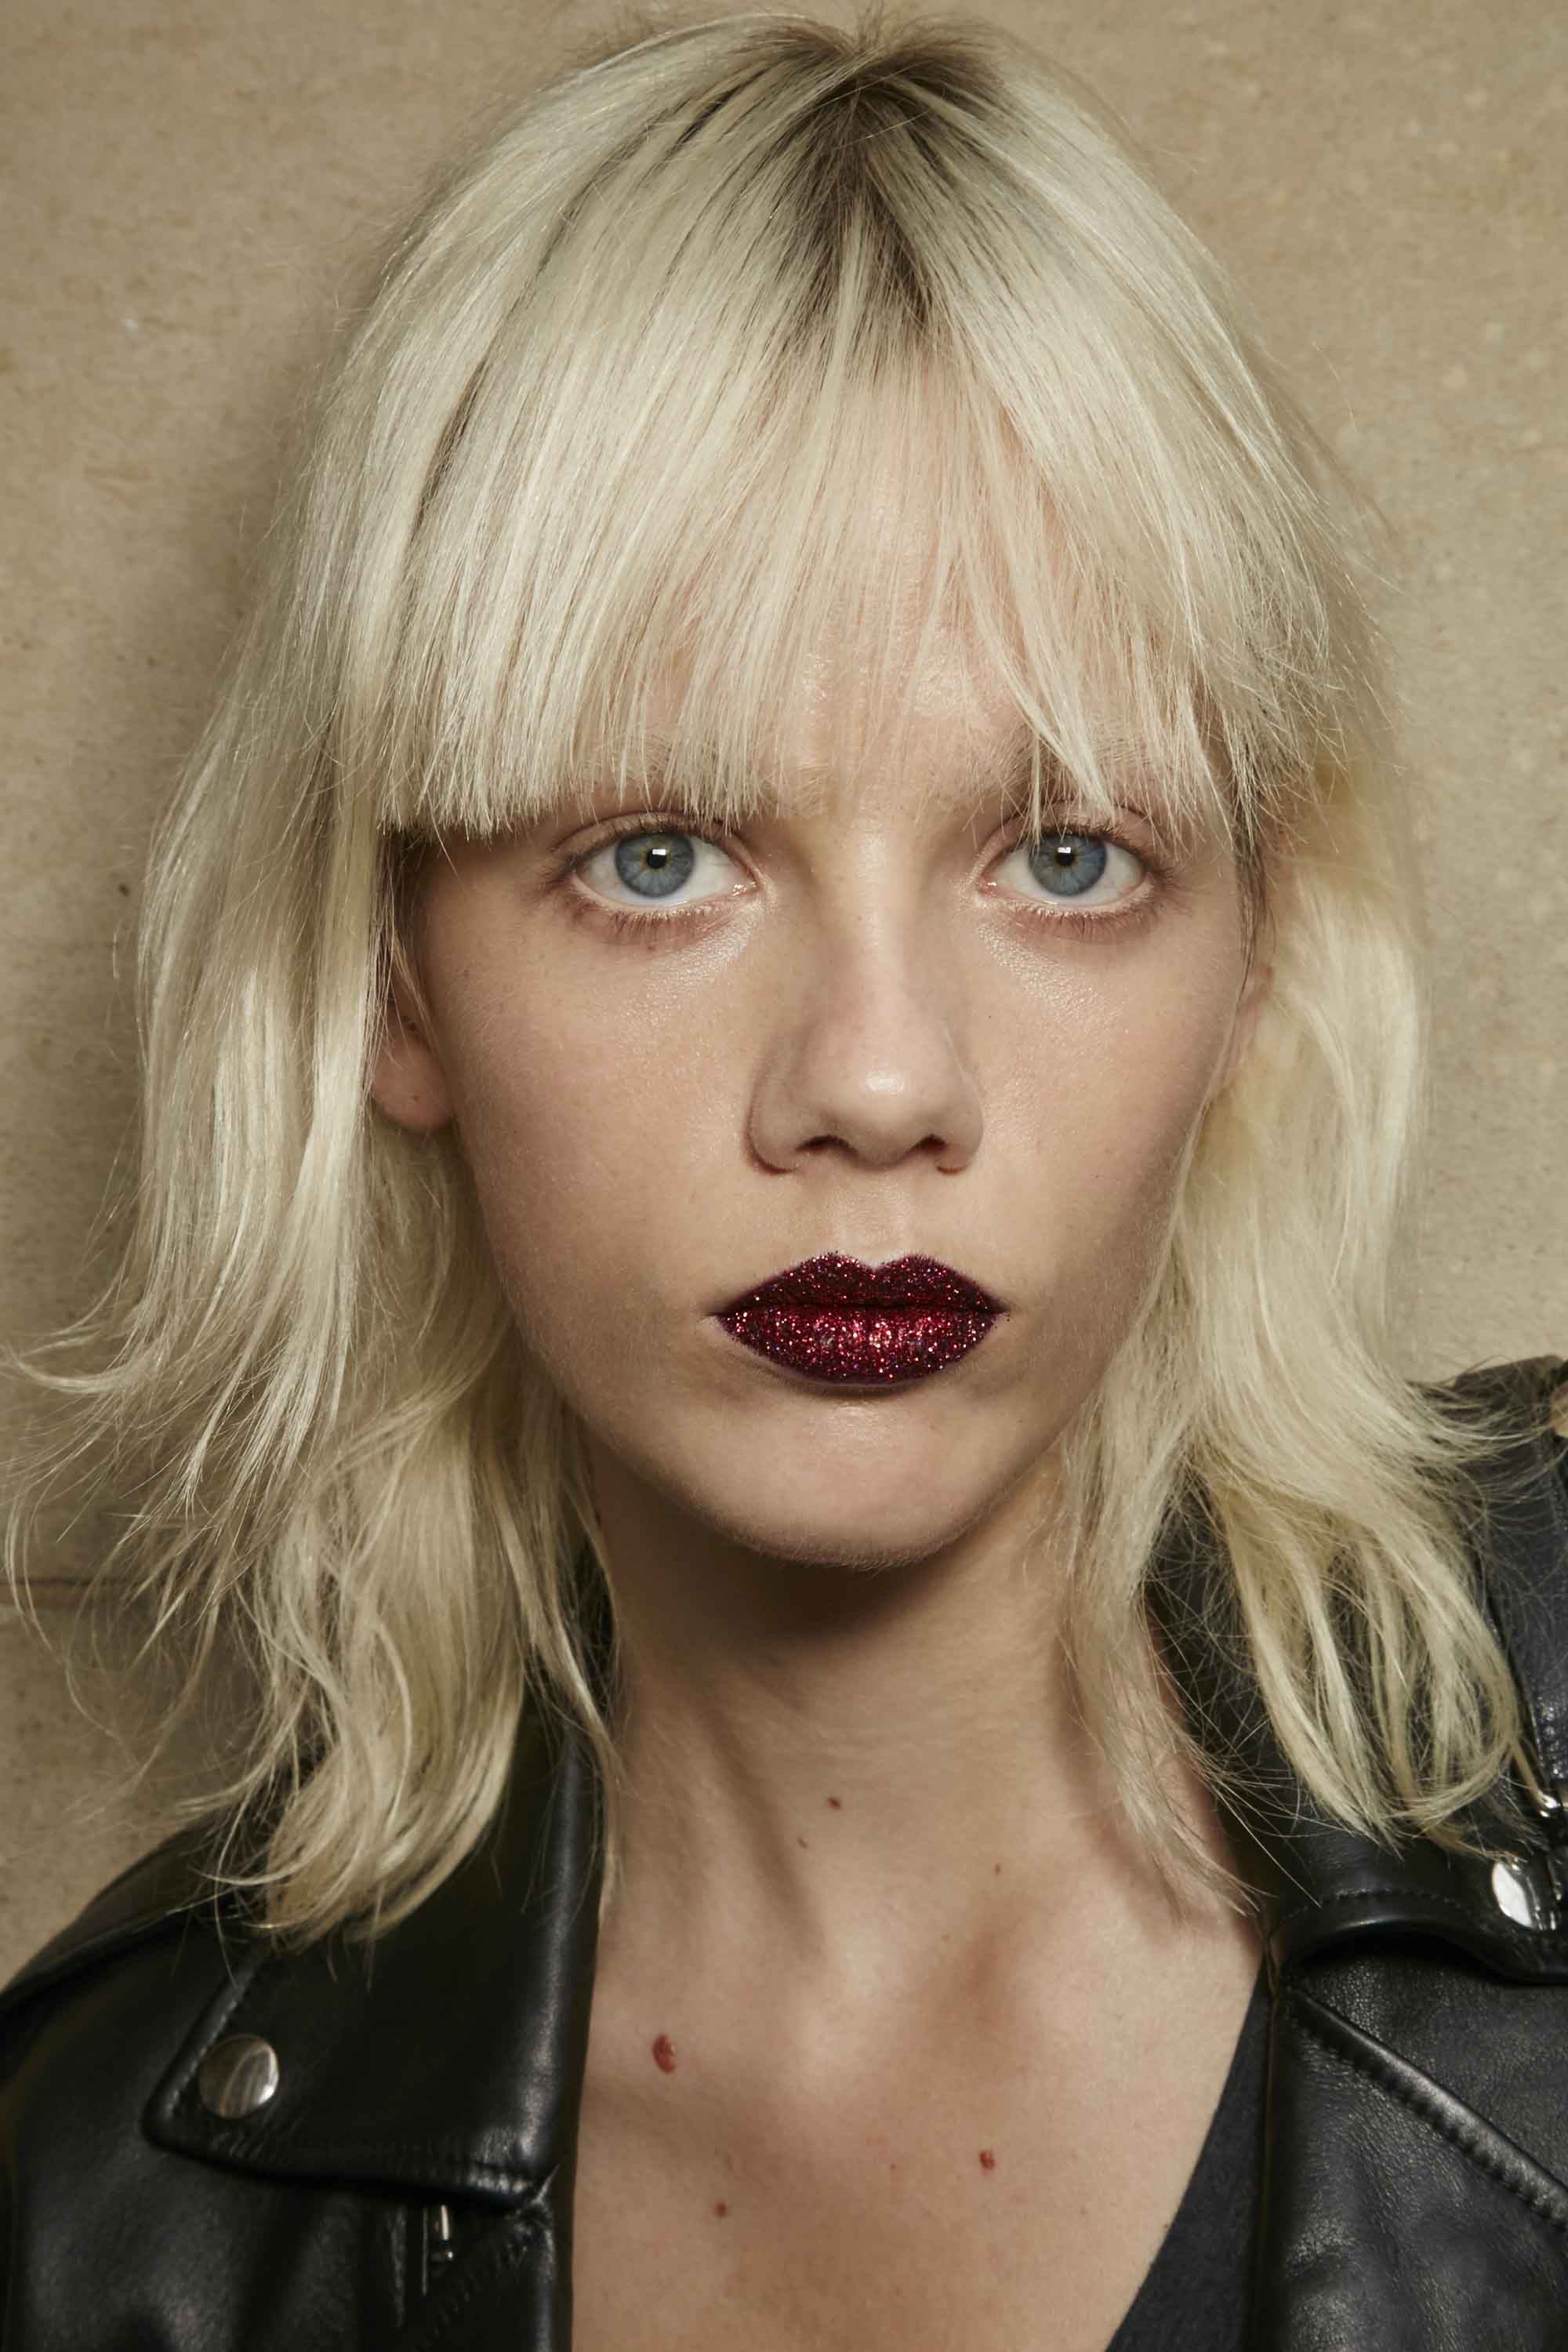 model with platinum blonde hair cut into a short shag haircut and blunt bangs, wearing dark red lipstick